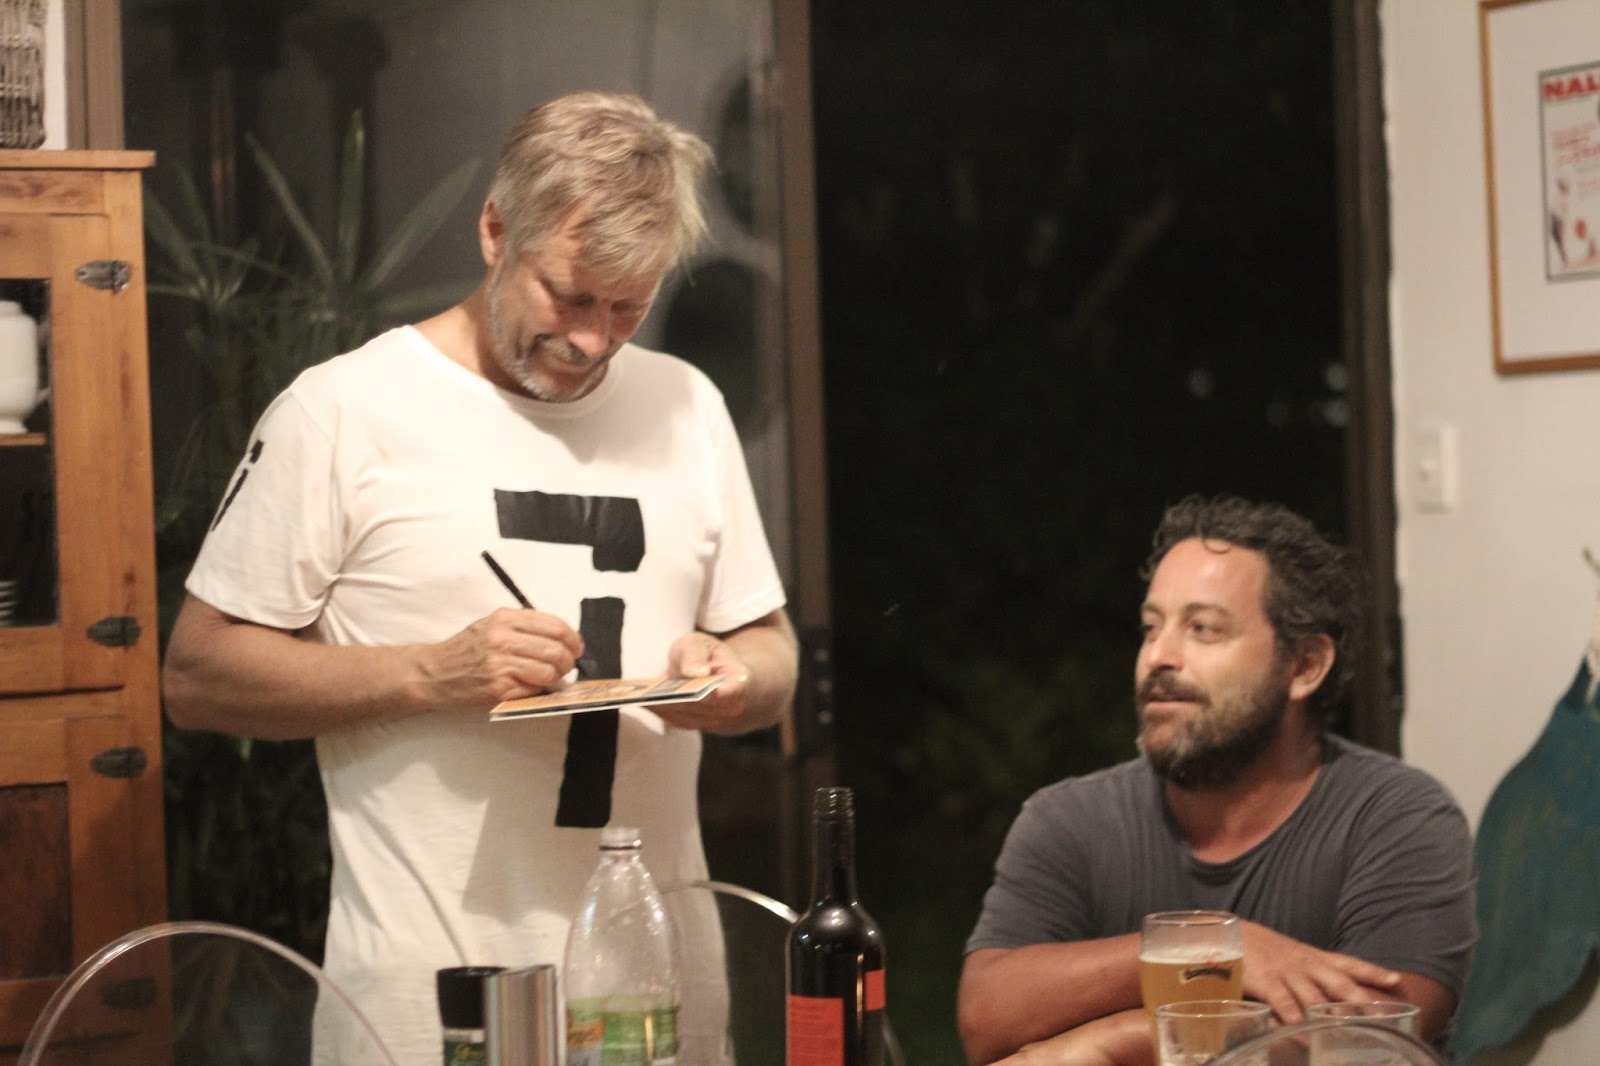 16-03-2016-australia-siebert-surfboards-16